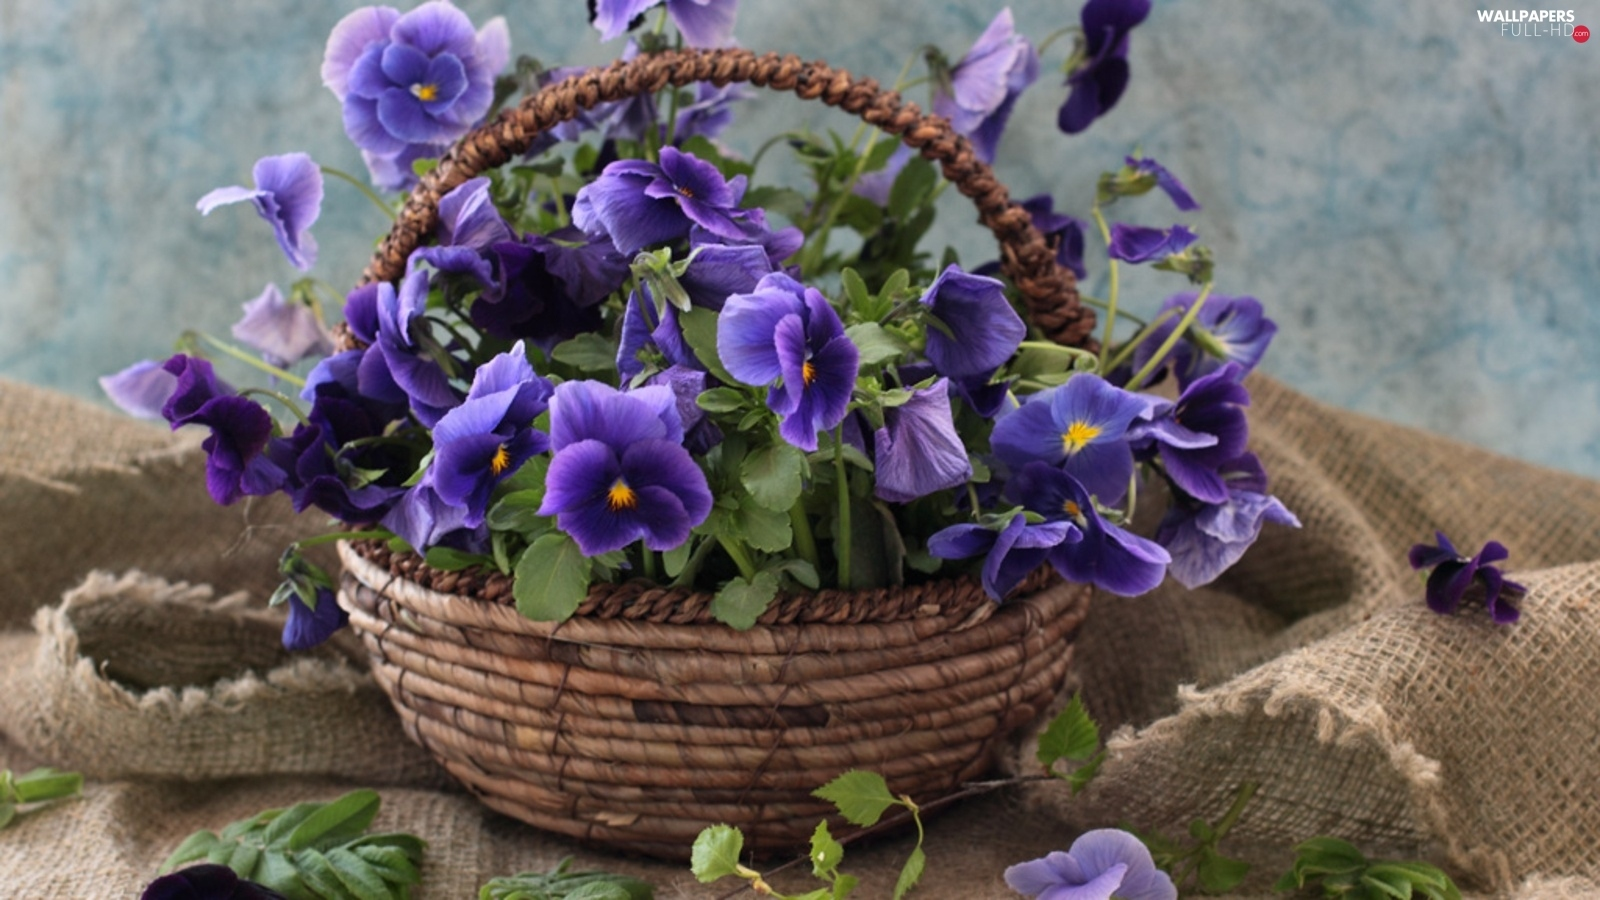 bouquet, pansies, basket